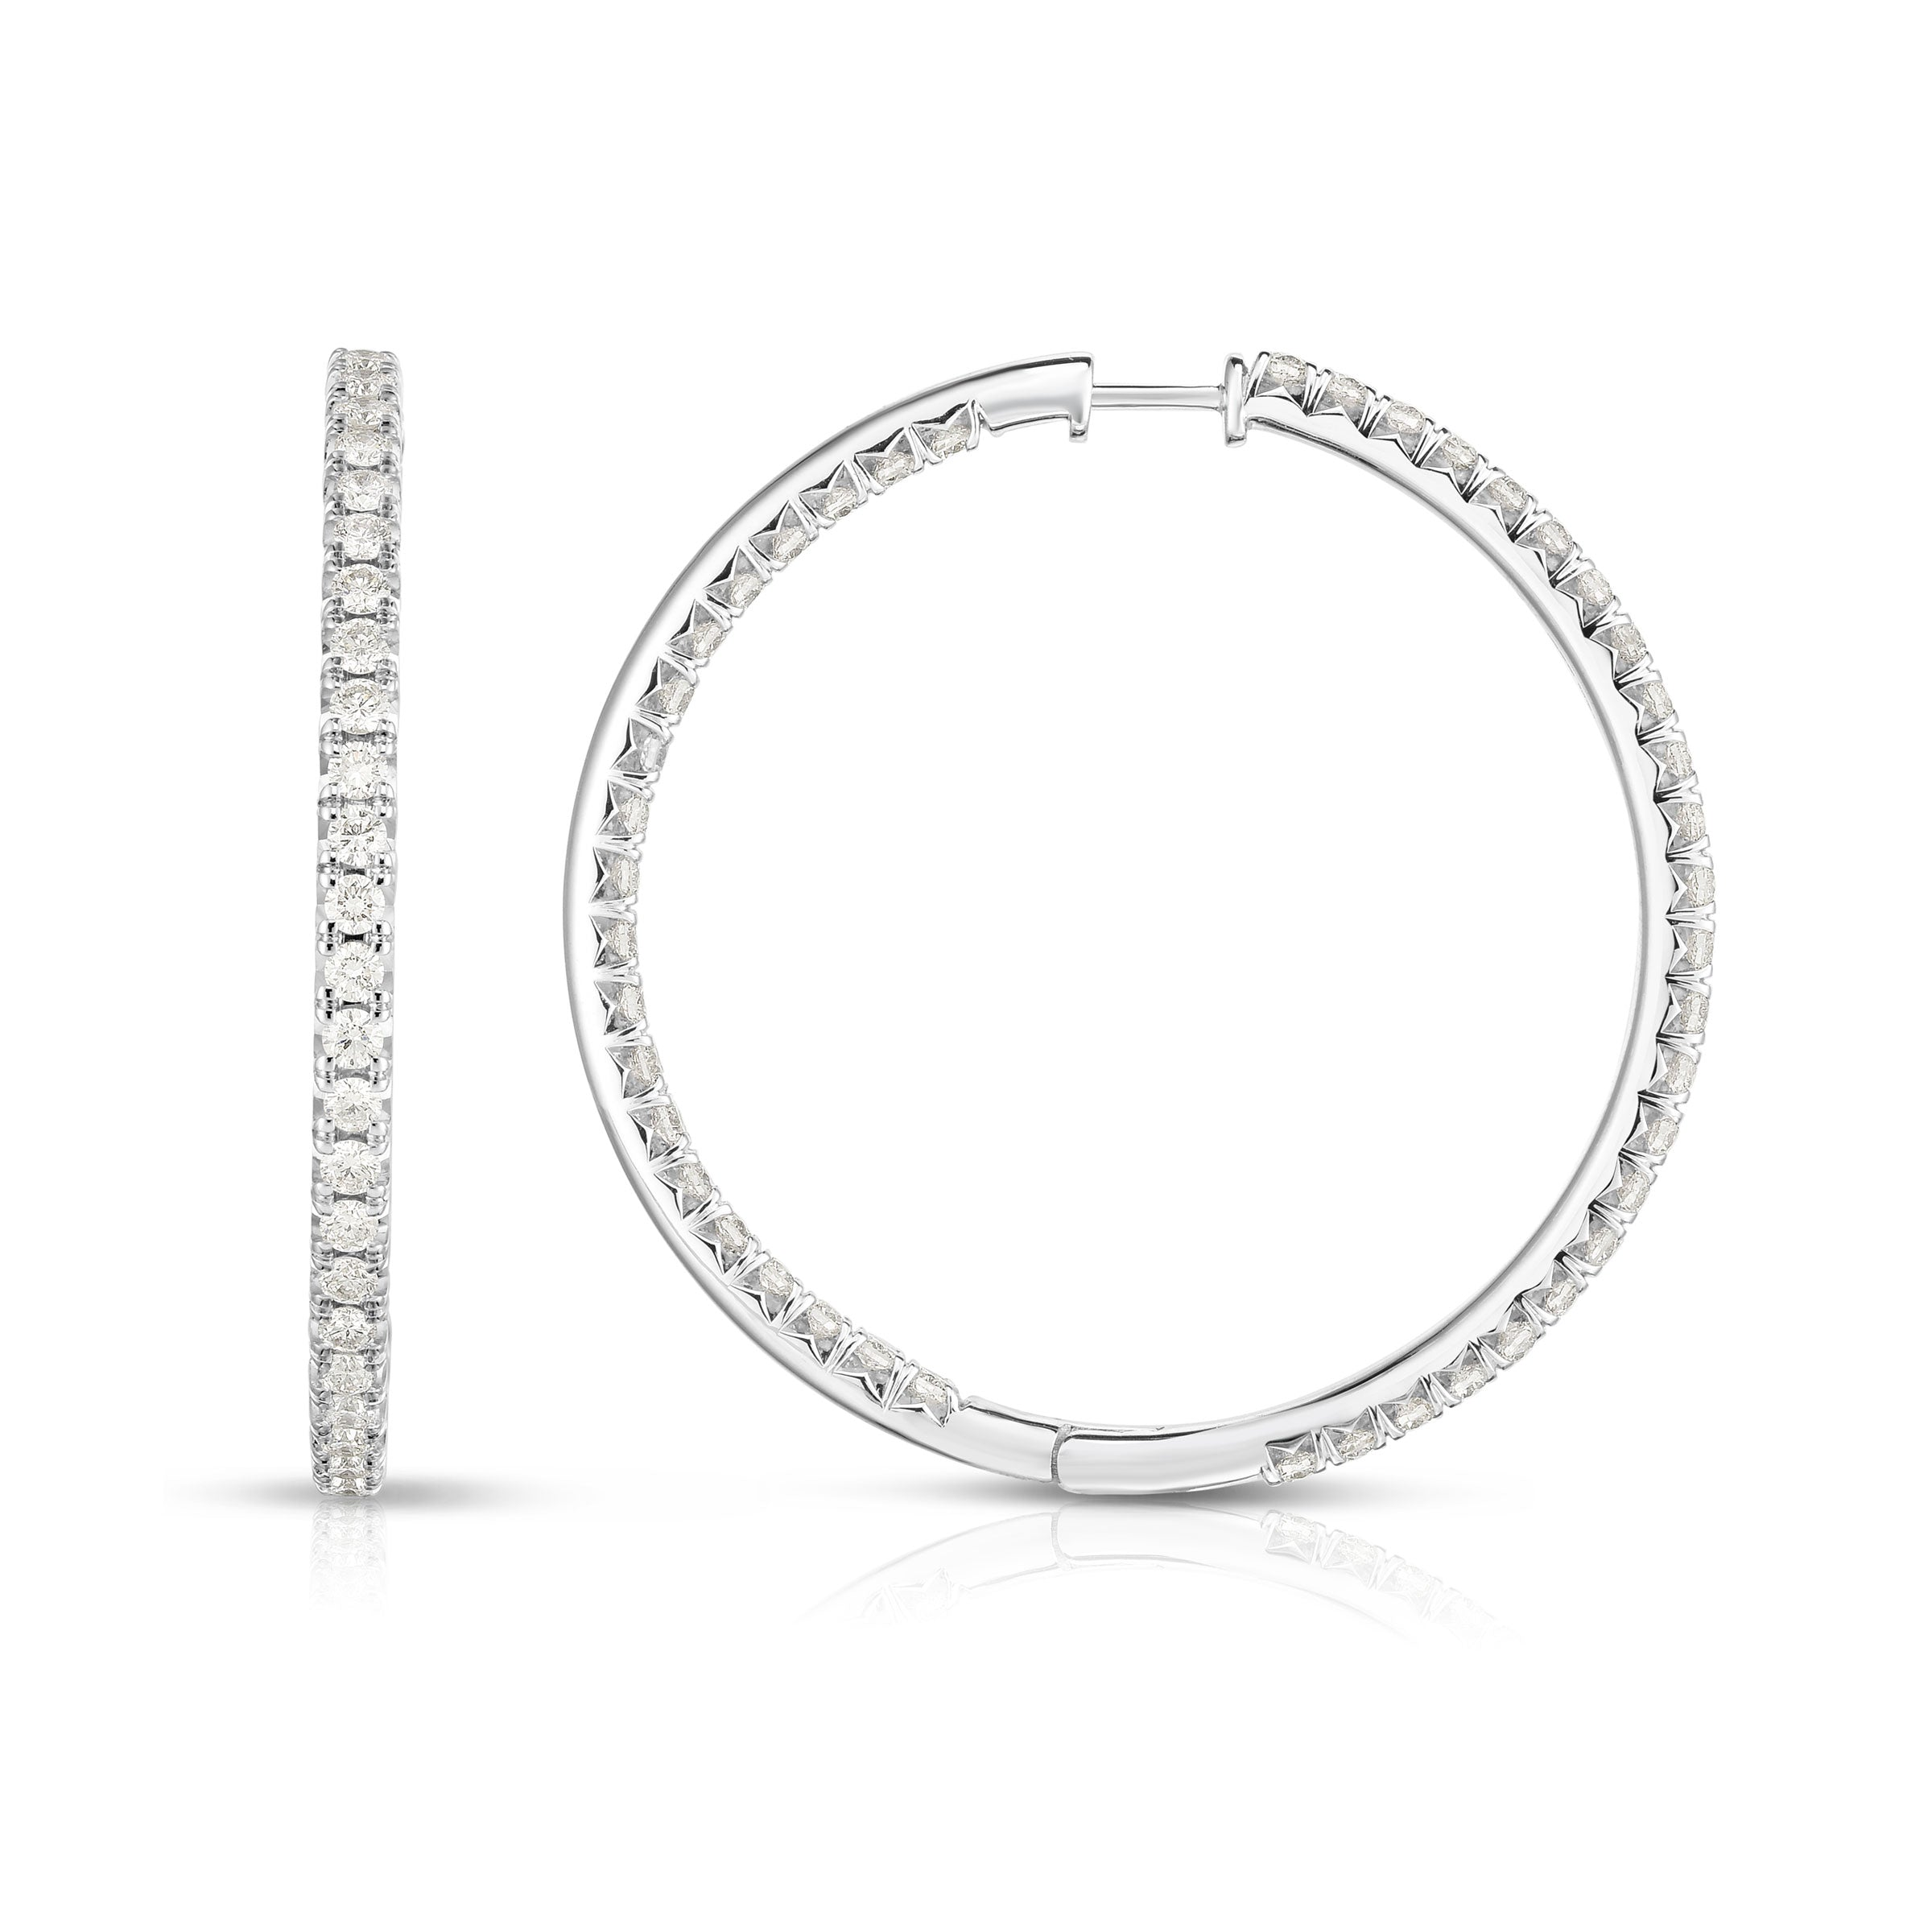 Inside Out Diamond Hoops, 1.50 Inches, 3 Carats, 14K White Gold